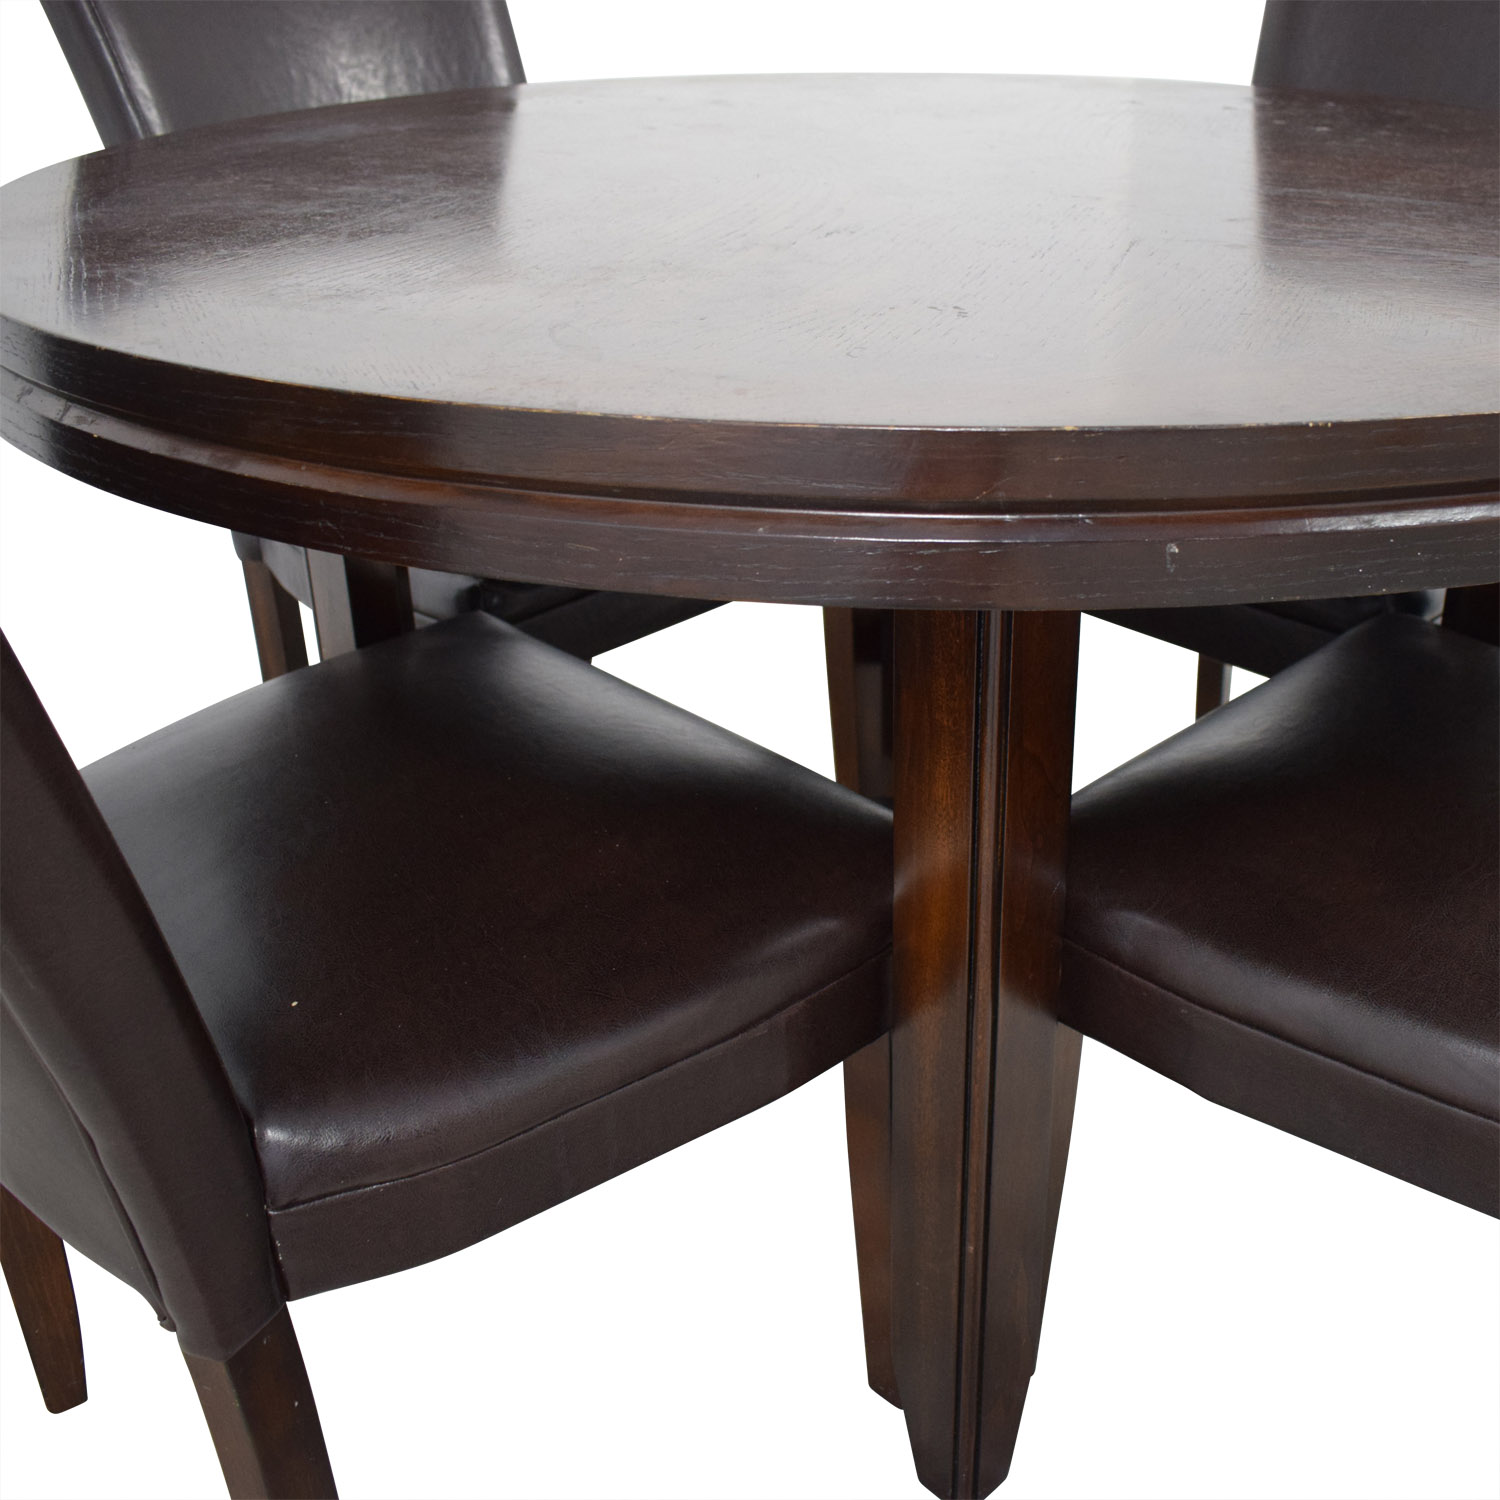 87 off round wood dining table with black leather. Black Bedroom Furniture Sets. Home Design Ideas